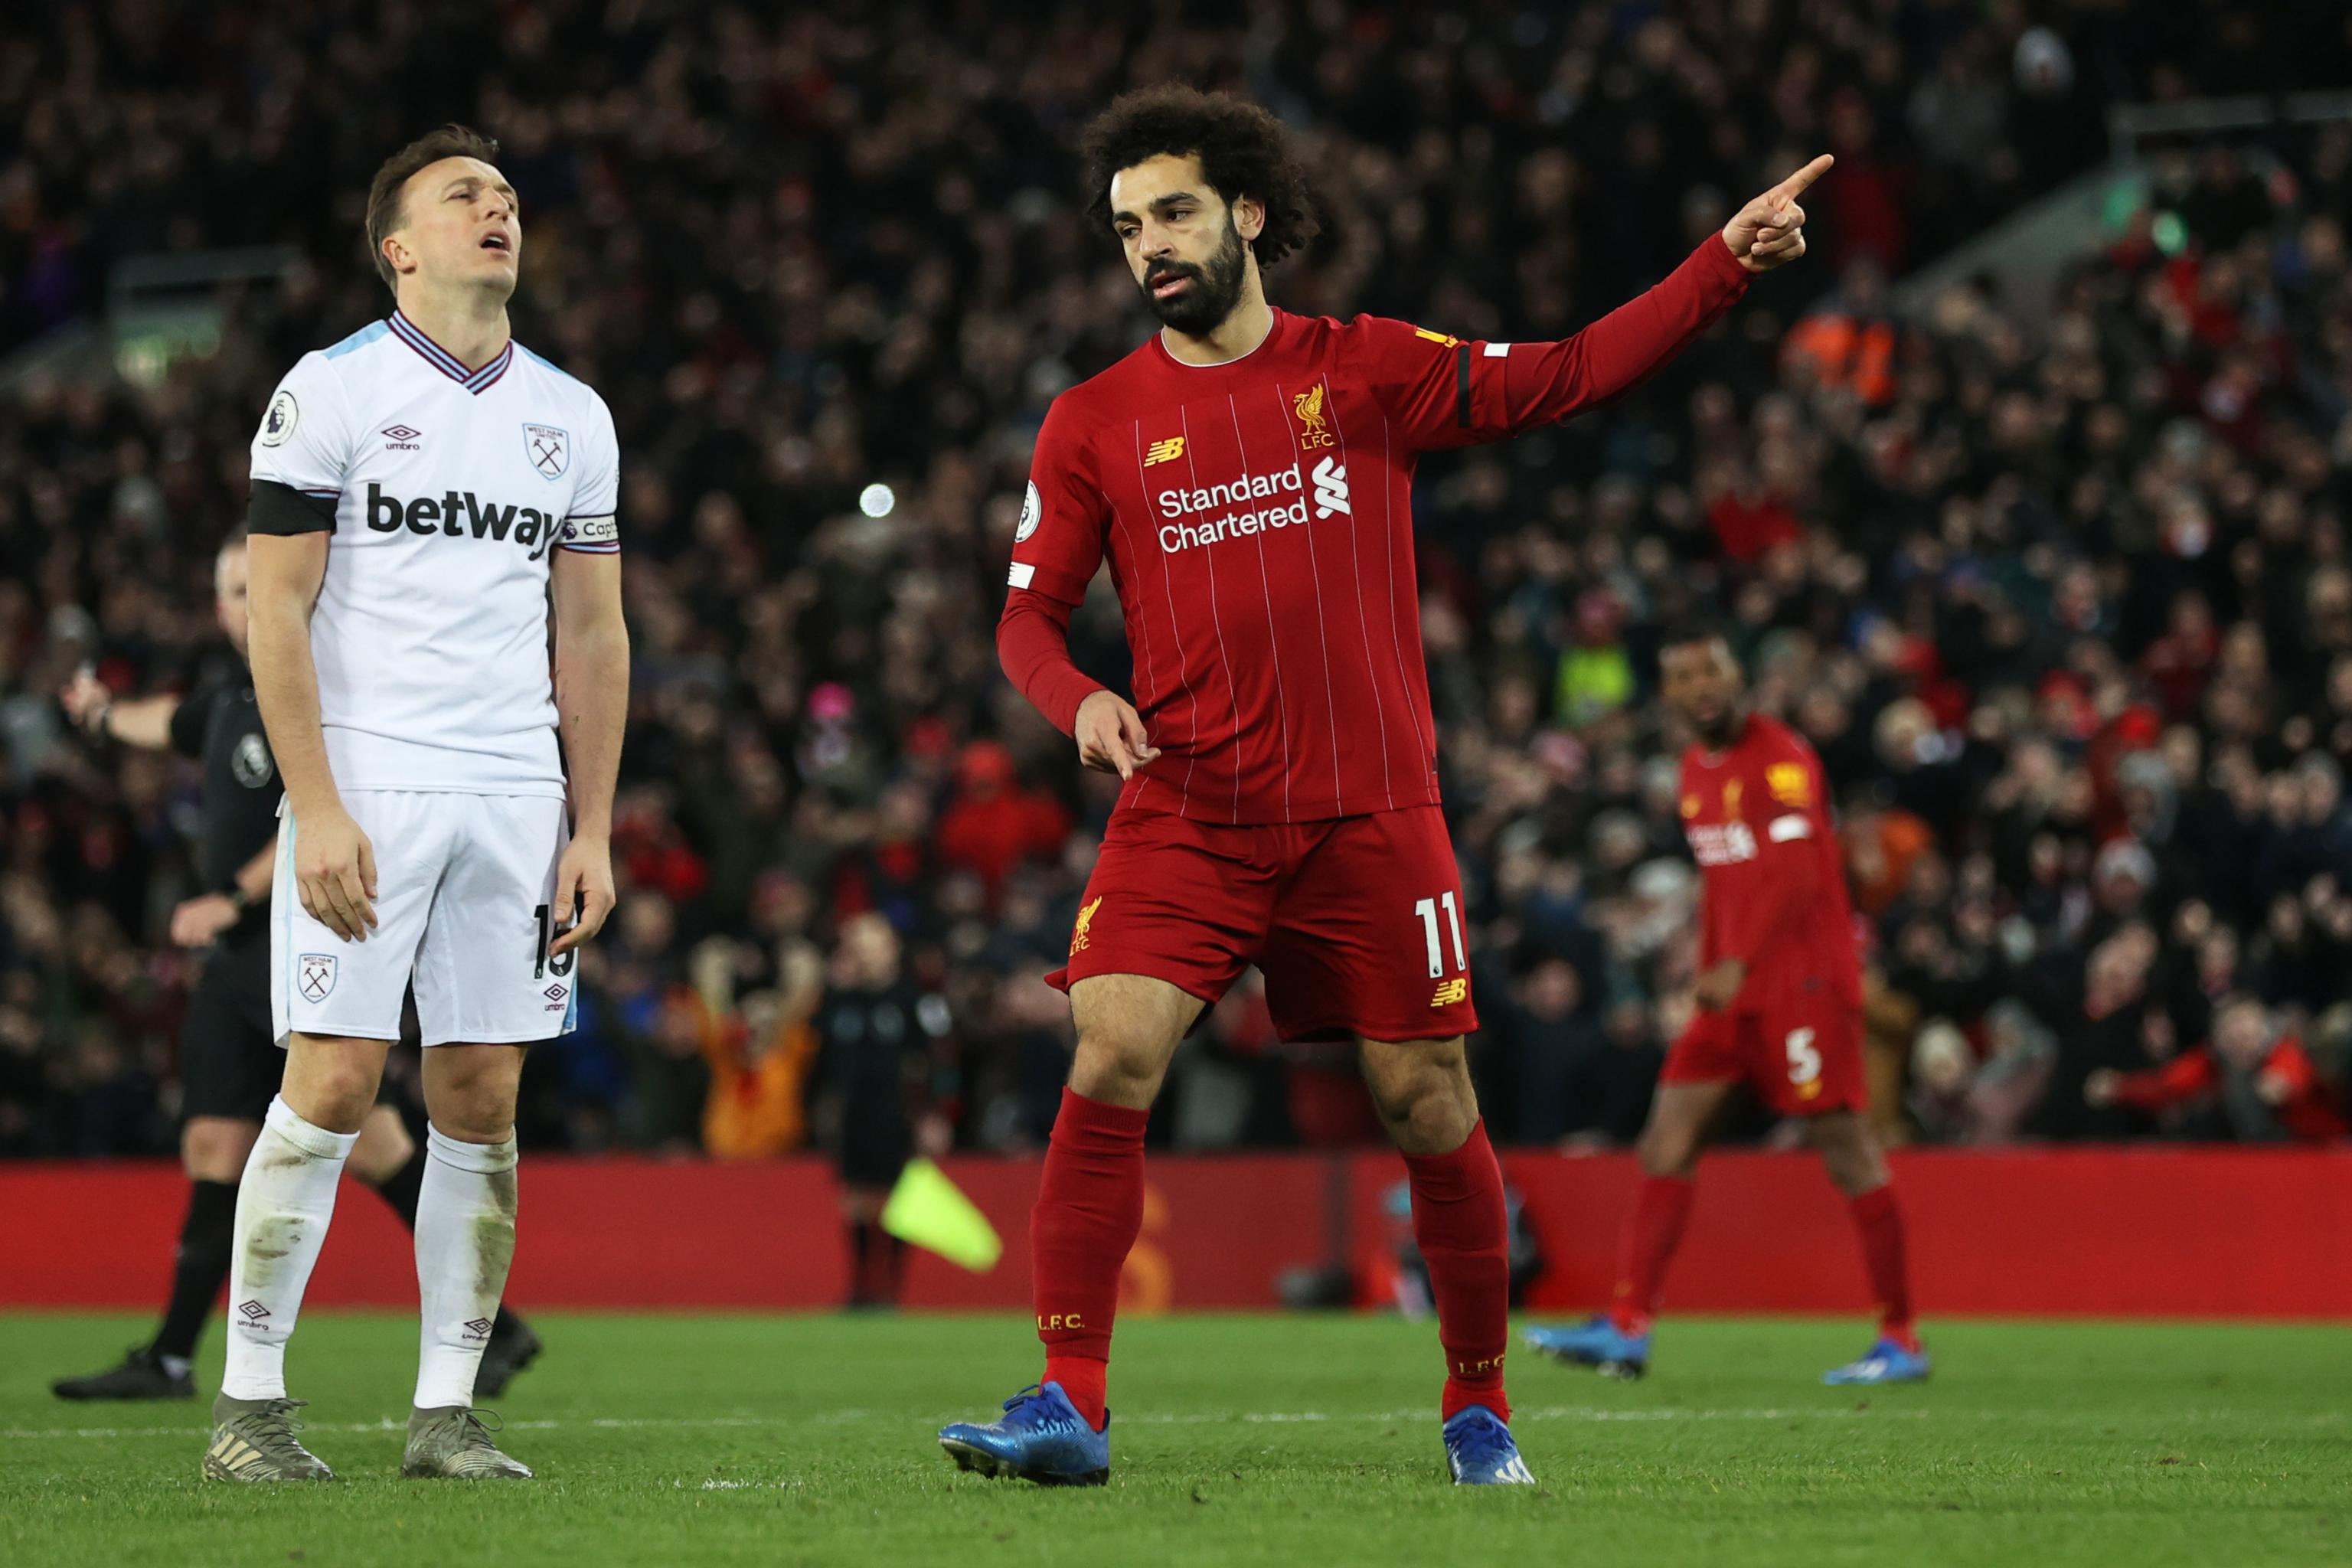 Premier League Table Final Week 27 2020 Standings Results And Week 28 Fixtures Bleacher Report Latest News Videos And Highlights